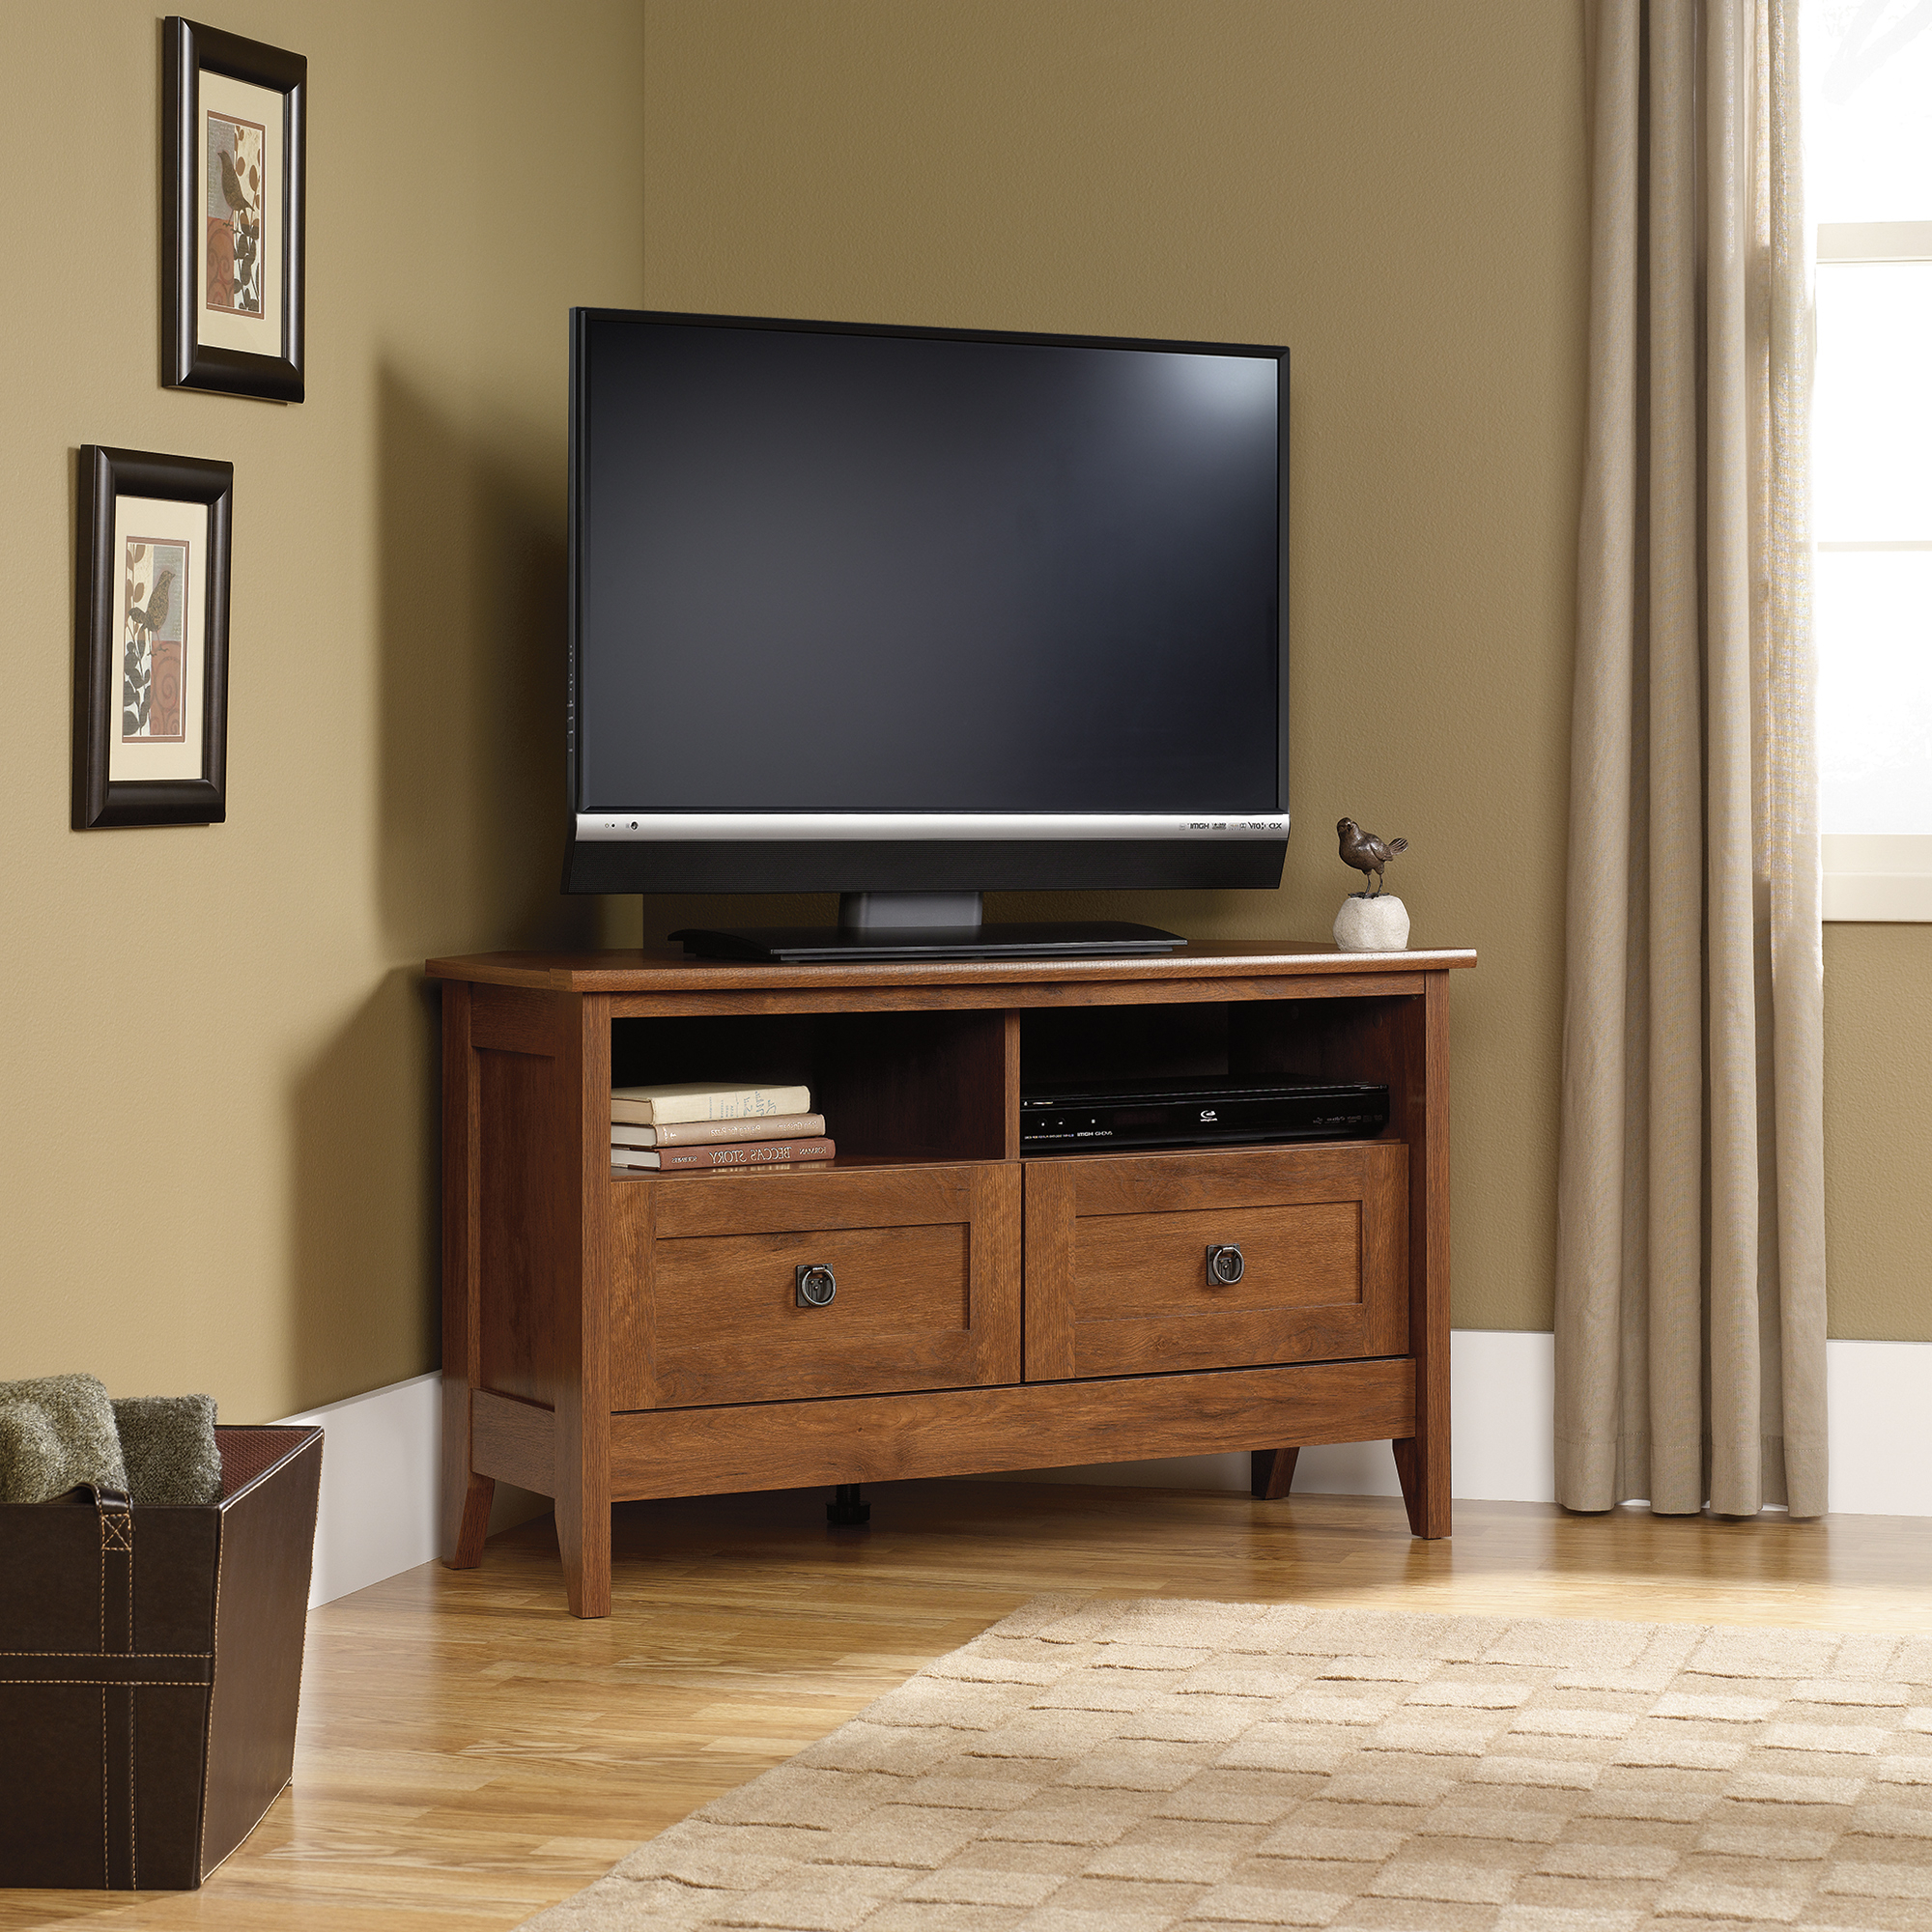 Sauder Intended For Best And Newest 24 Inch Corner Tv Stands (Gallery 1 of 20)